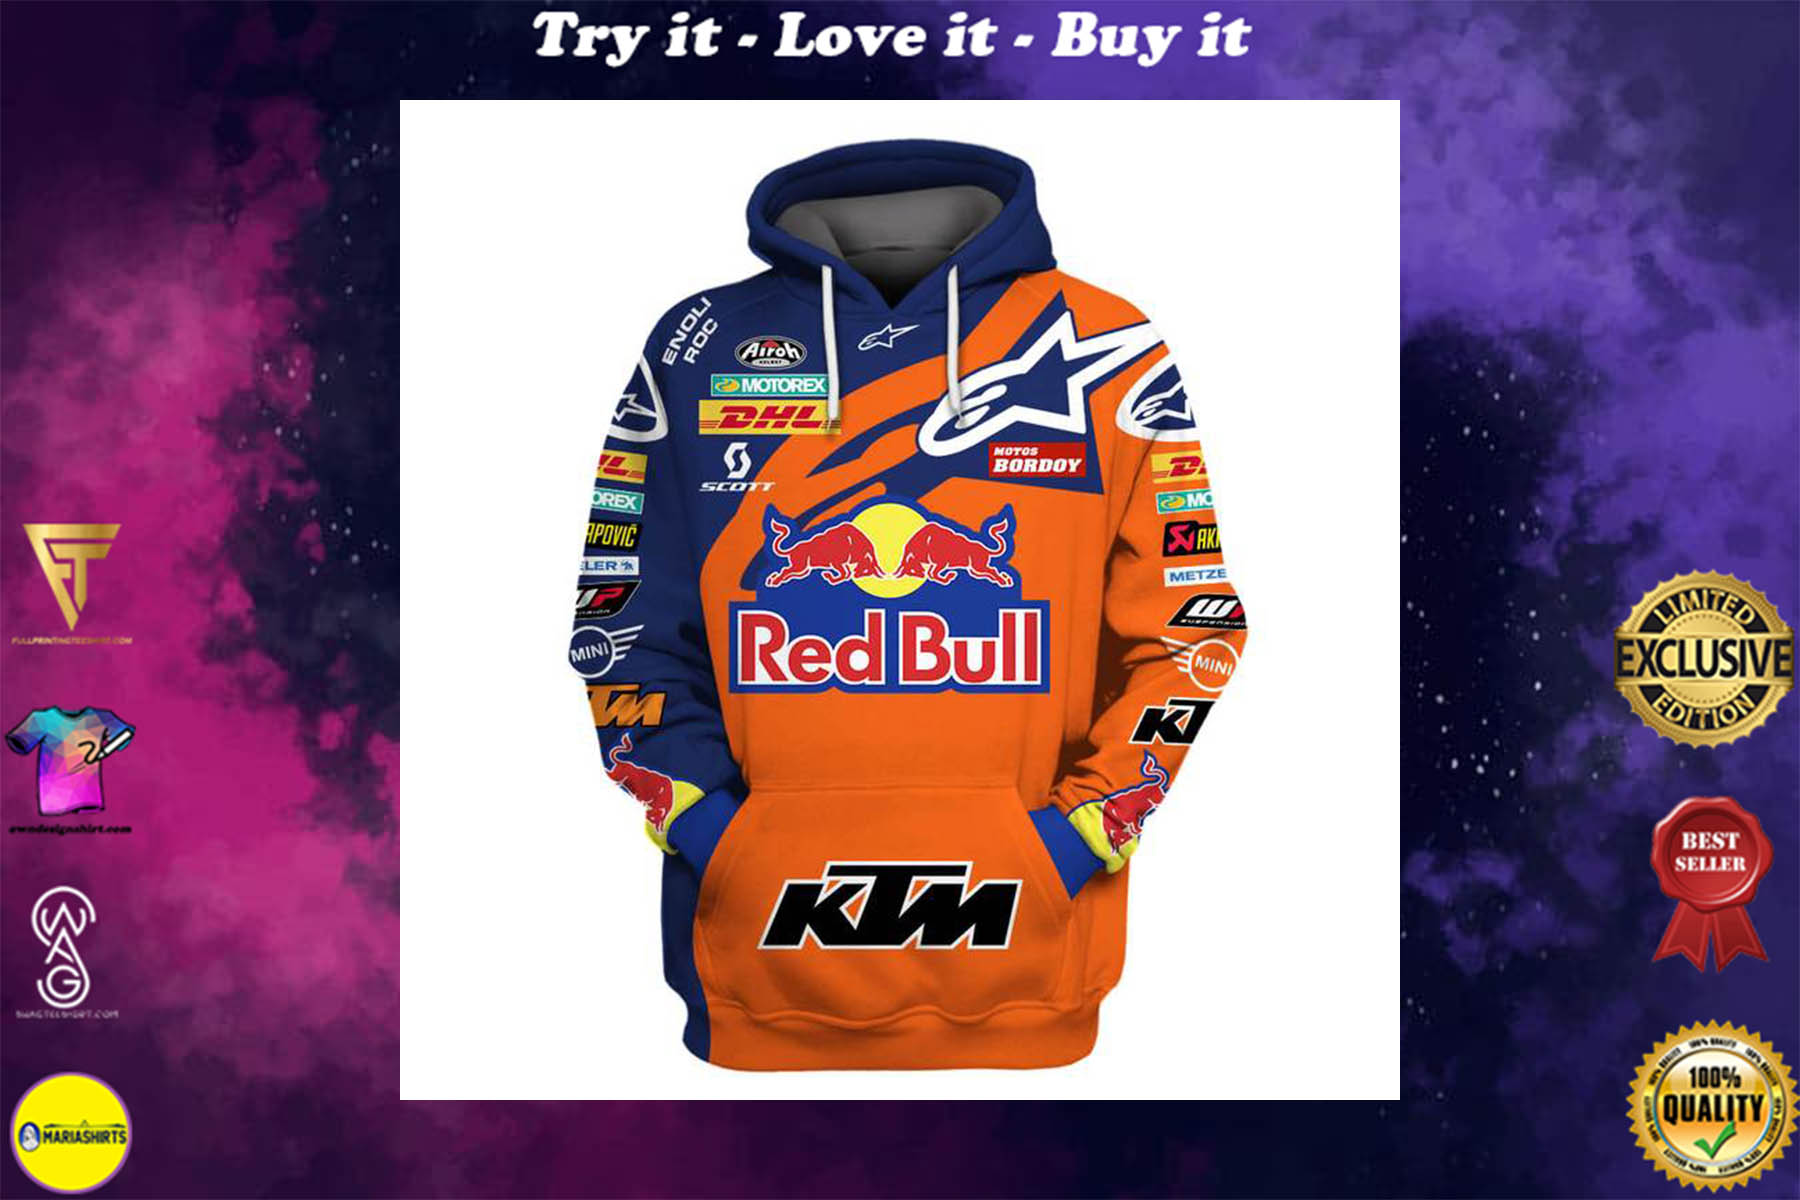 [special edition] red bull and ktm factory racing full printing shirt - maria